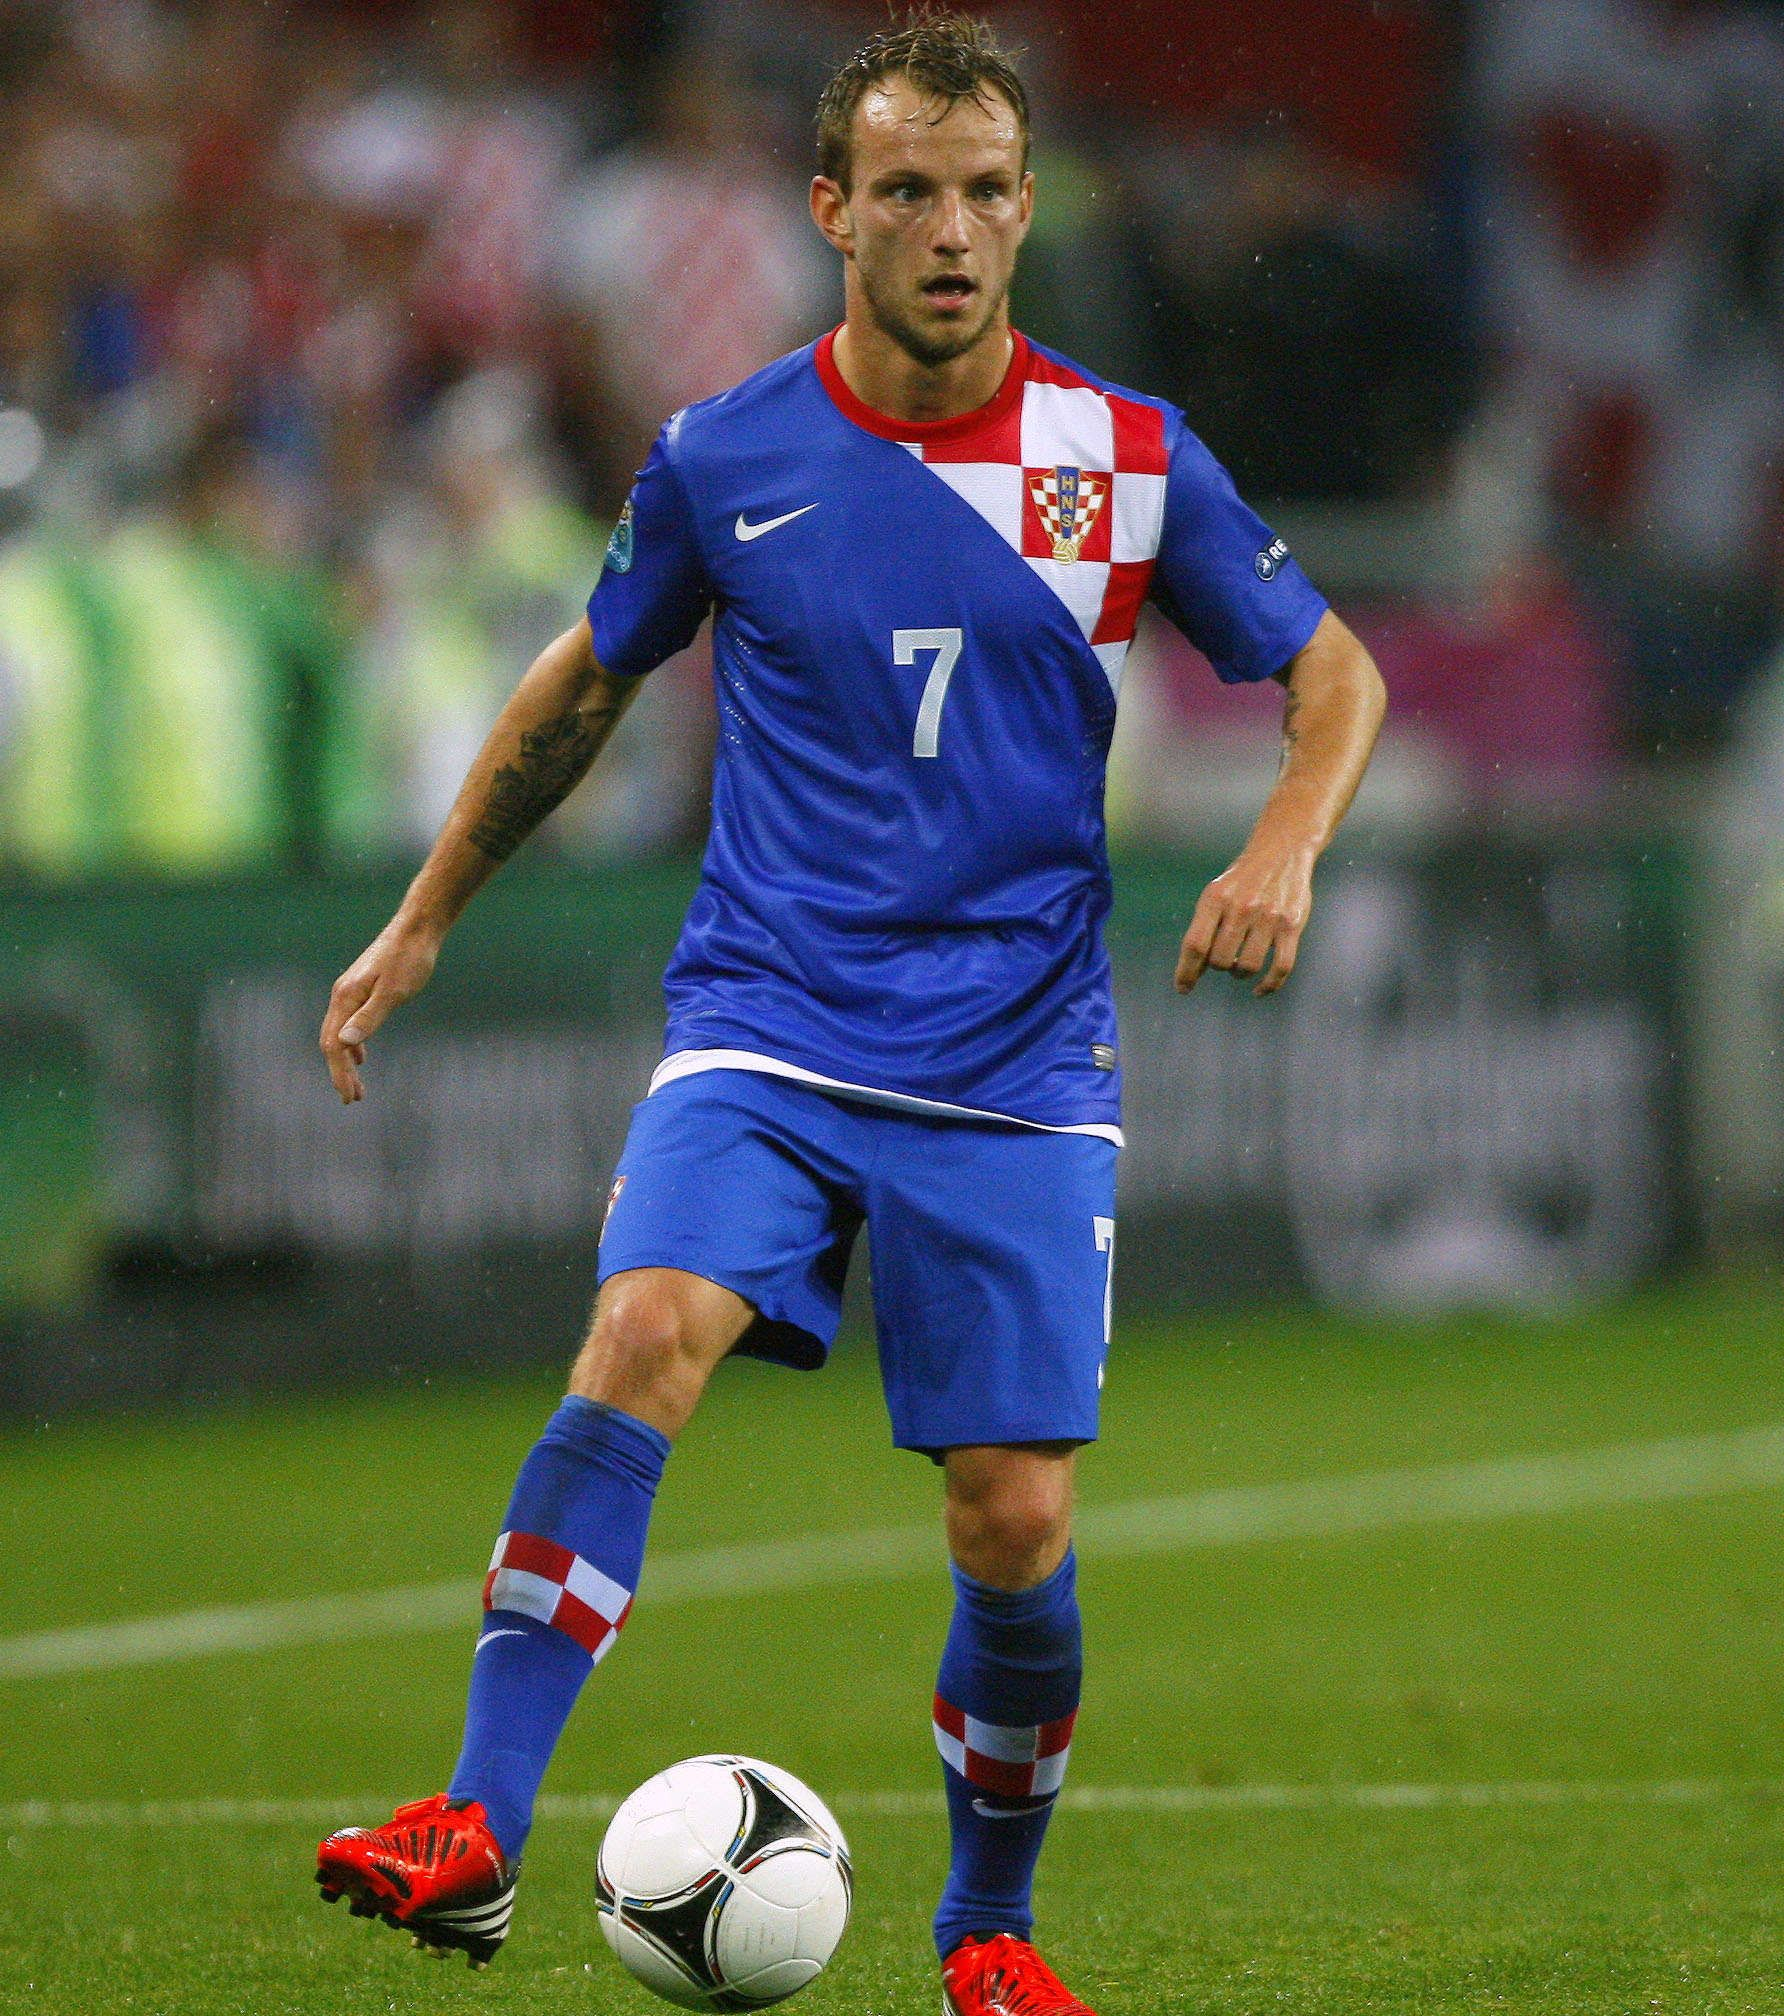 Ivan Rakitic on Croatia National Team Soccer